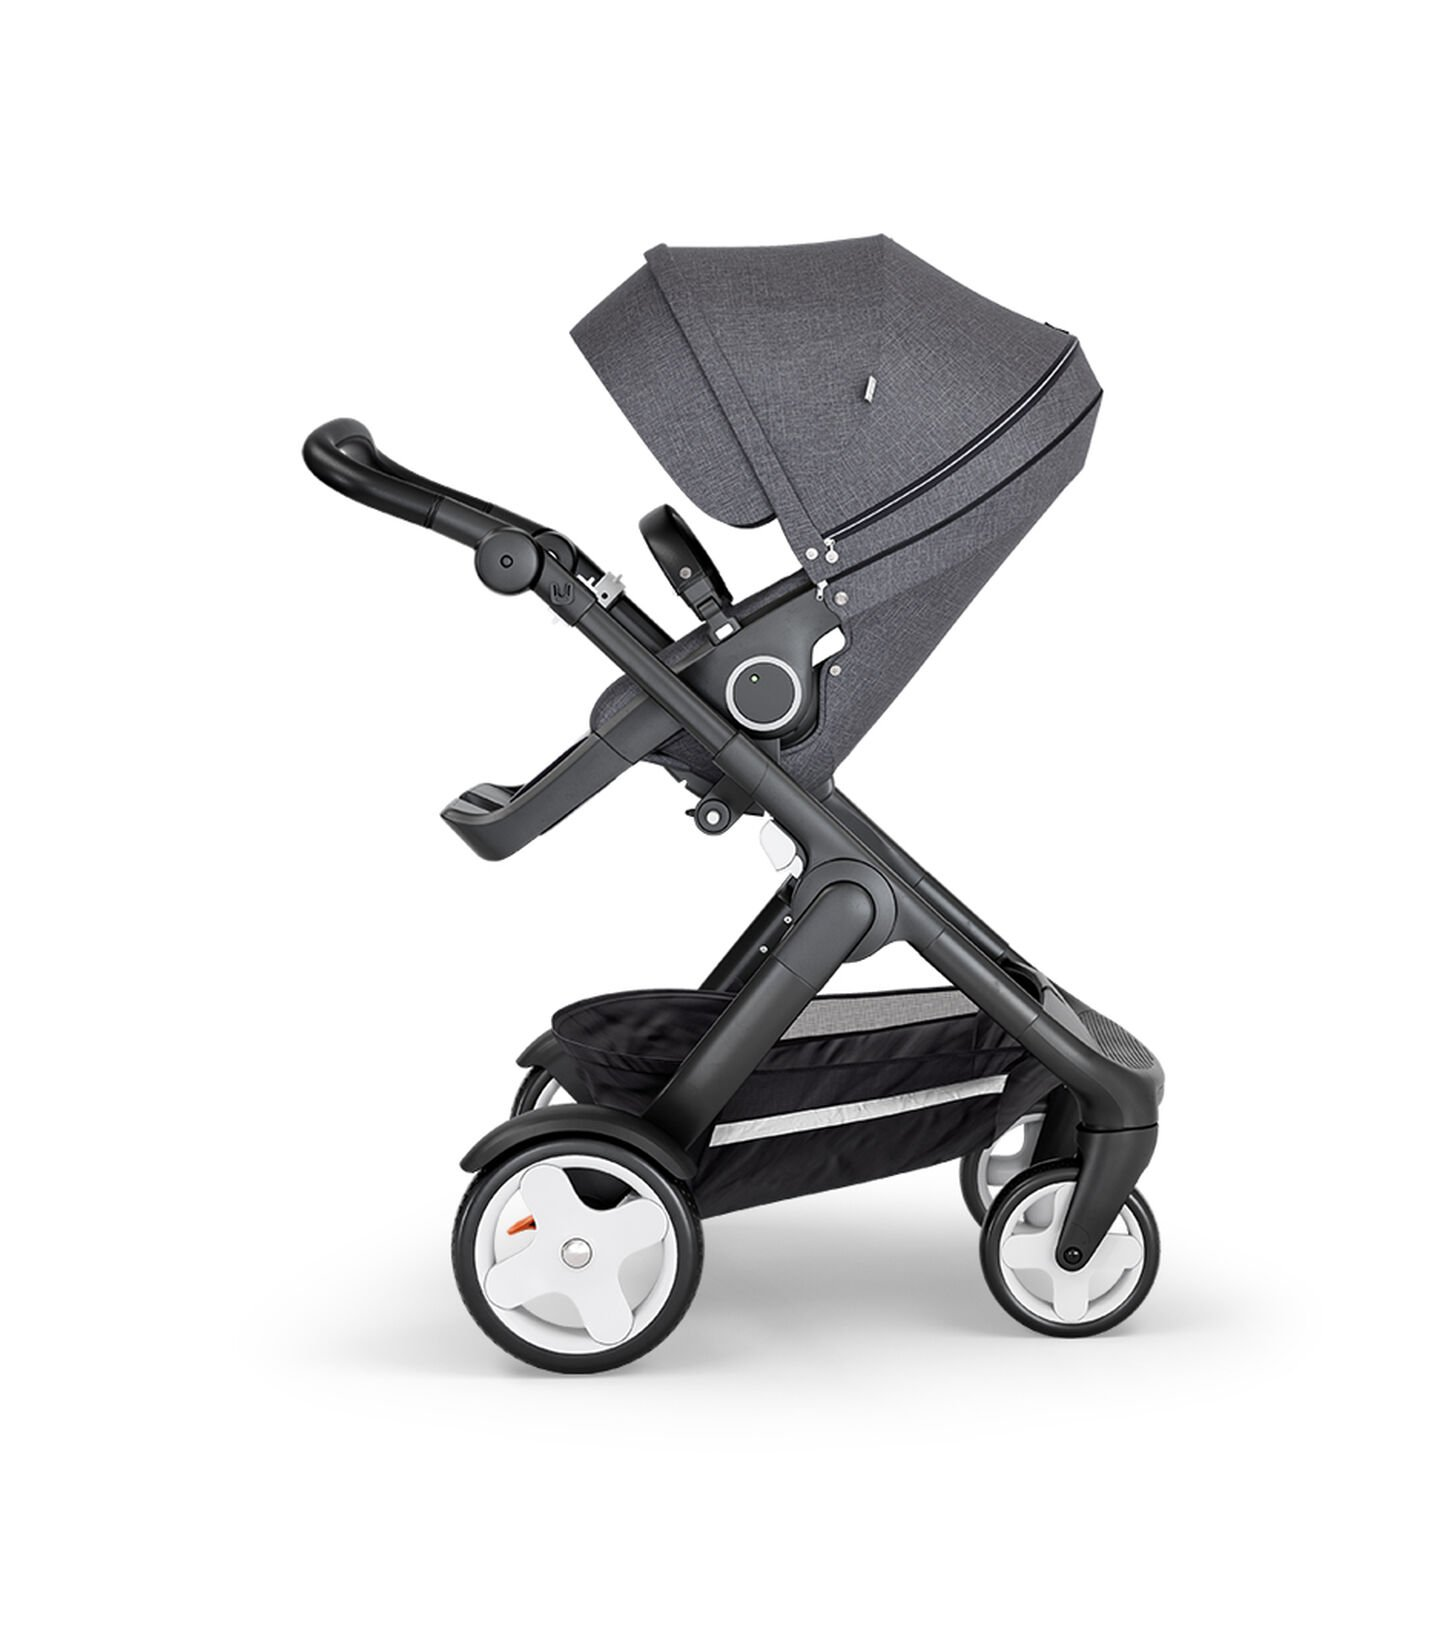 Stokke® Trailz™ with Black Chassis, Black Leatherette and Classic Wheels. Stokke® Stroller Seat, Black Melange. view 2